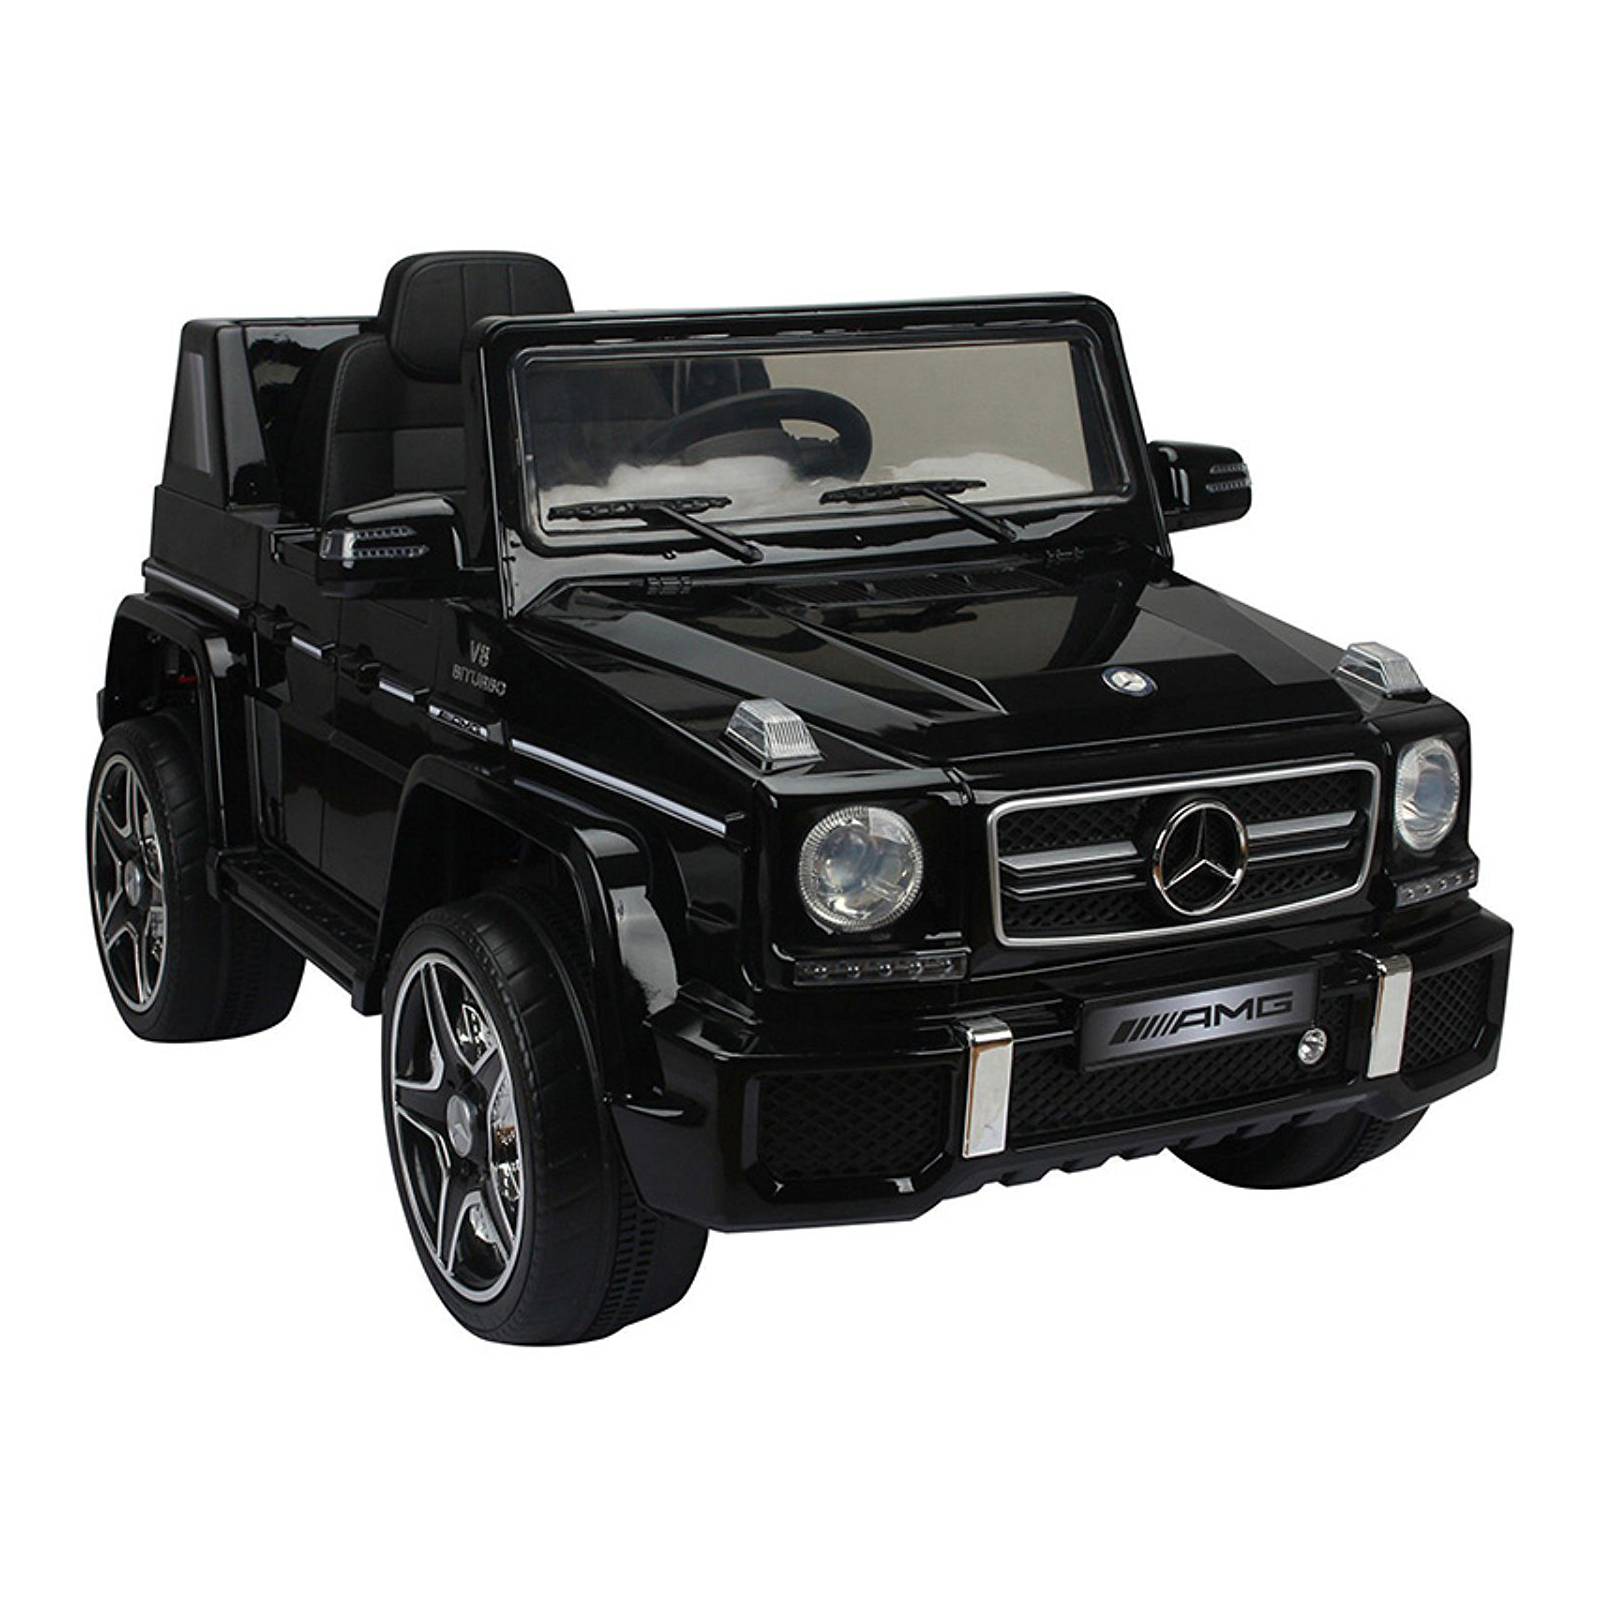 Mercedes G-63 12V Kids Ride On Car - Black